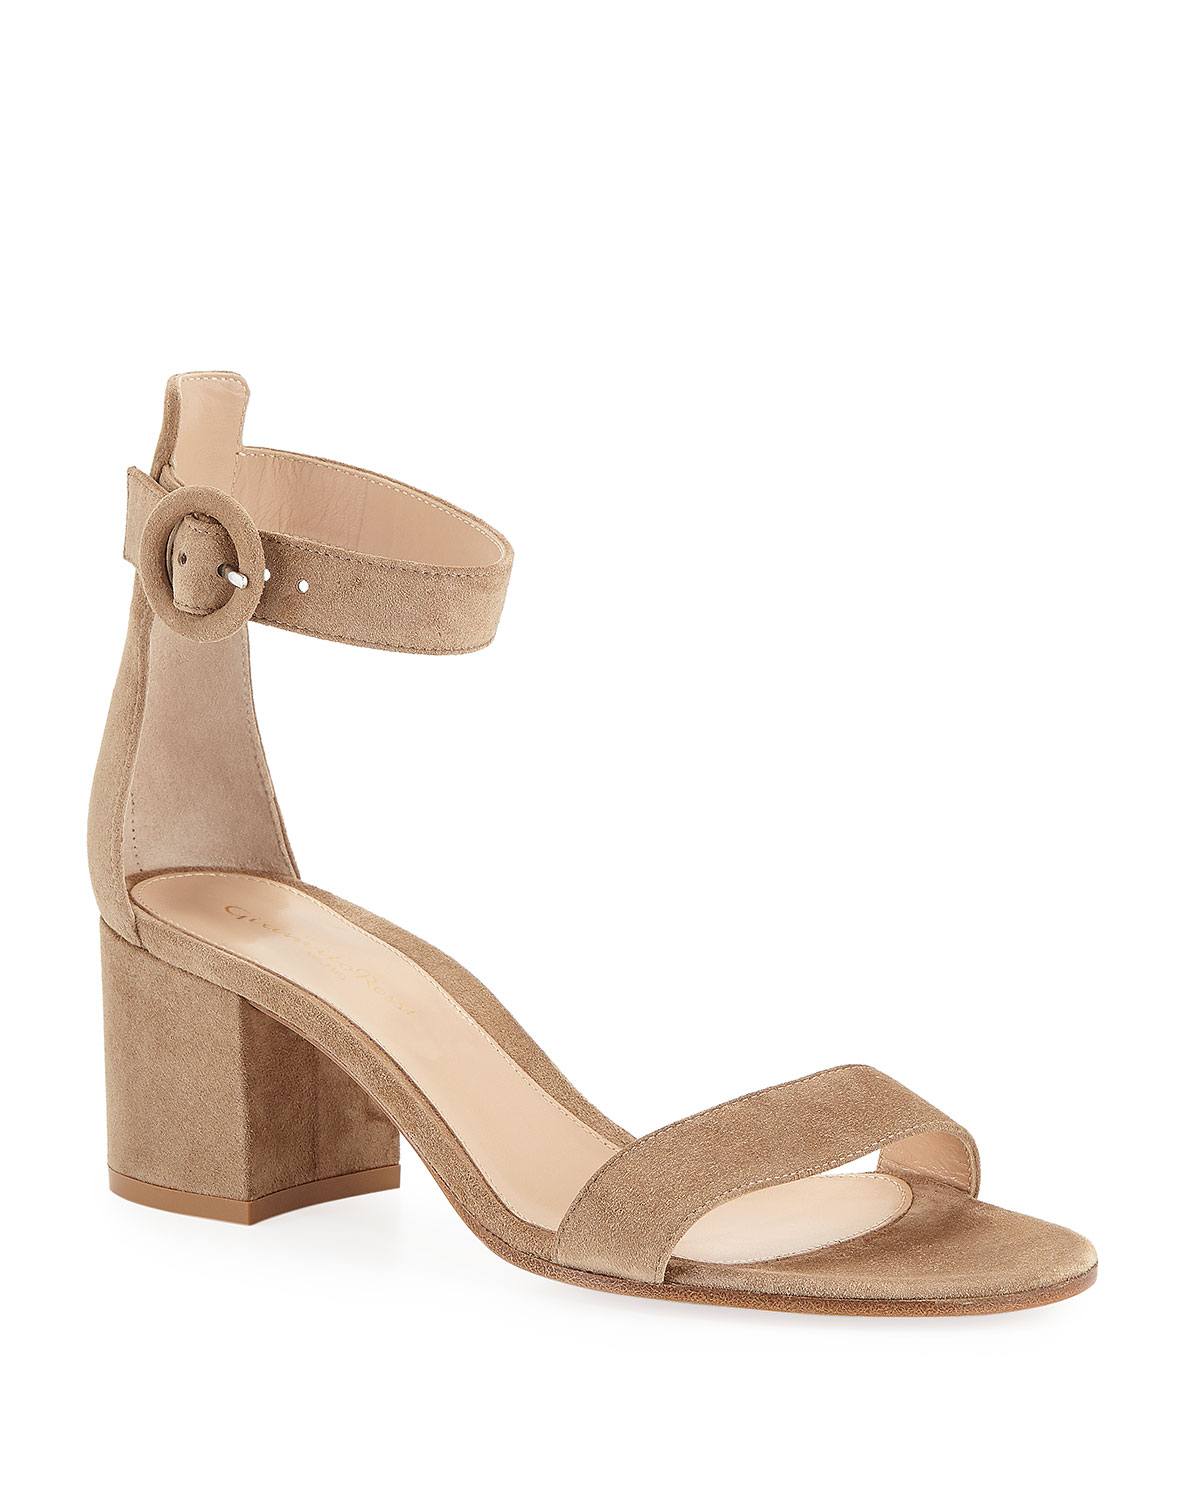 9d4004b03d11 Gianvito Rossi Suede Ankle-Strap Chunky-Heel Sandals